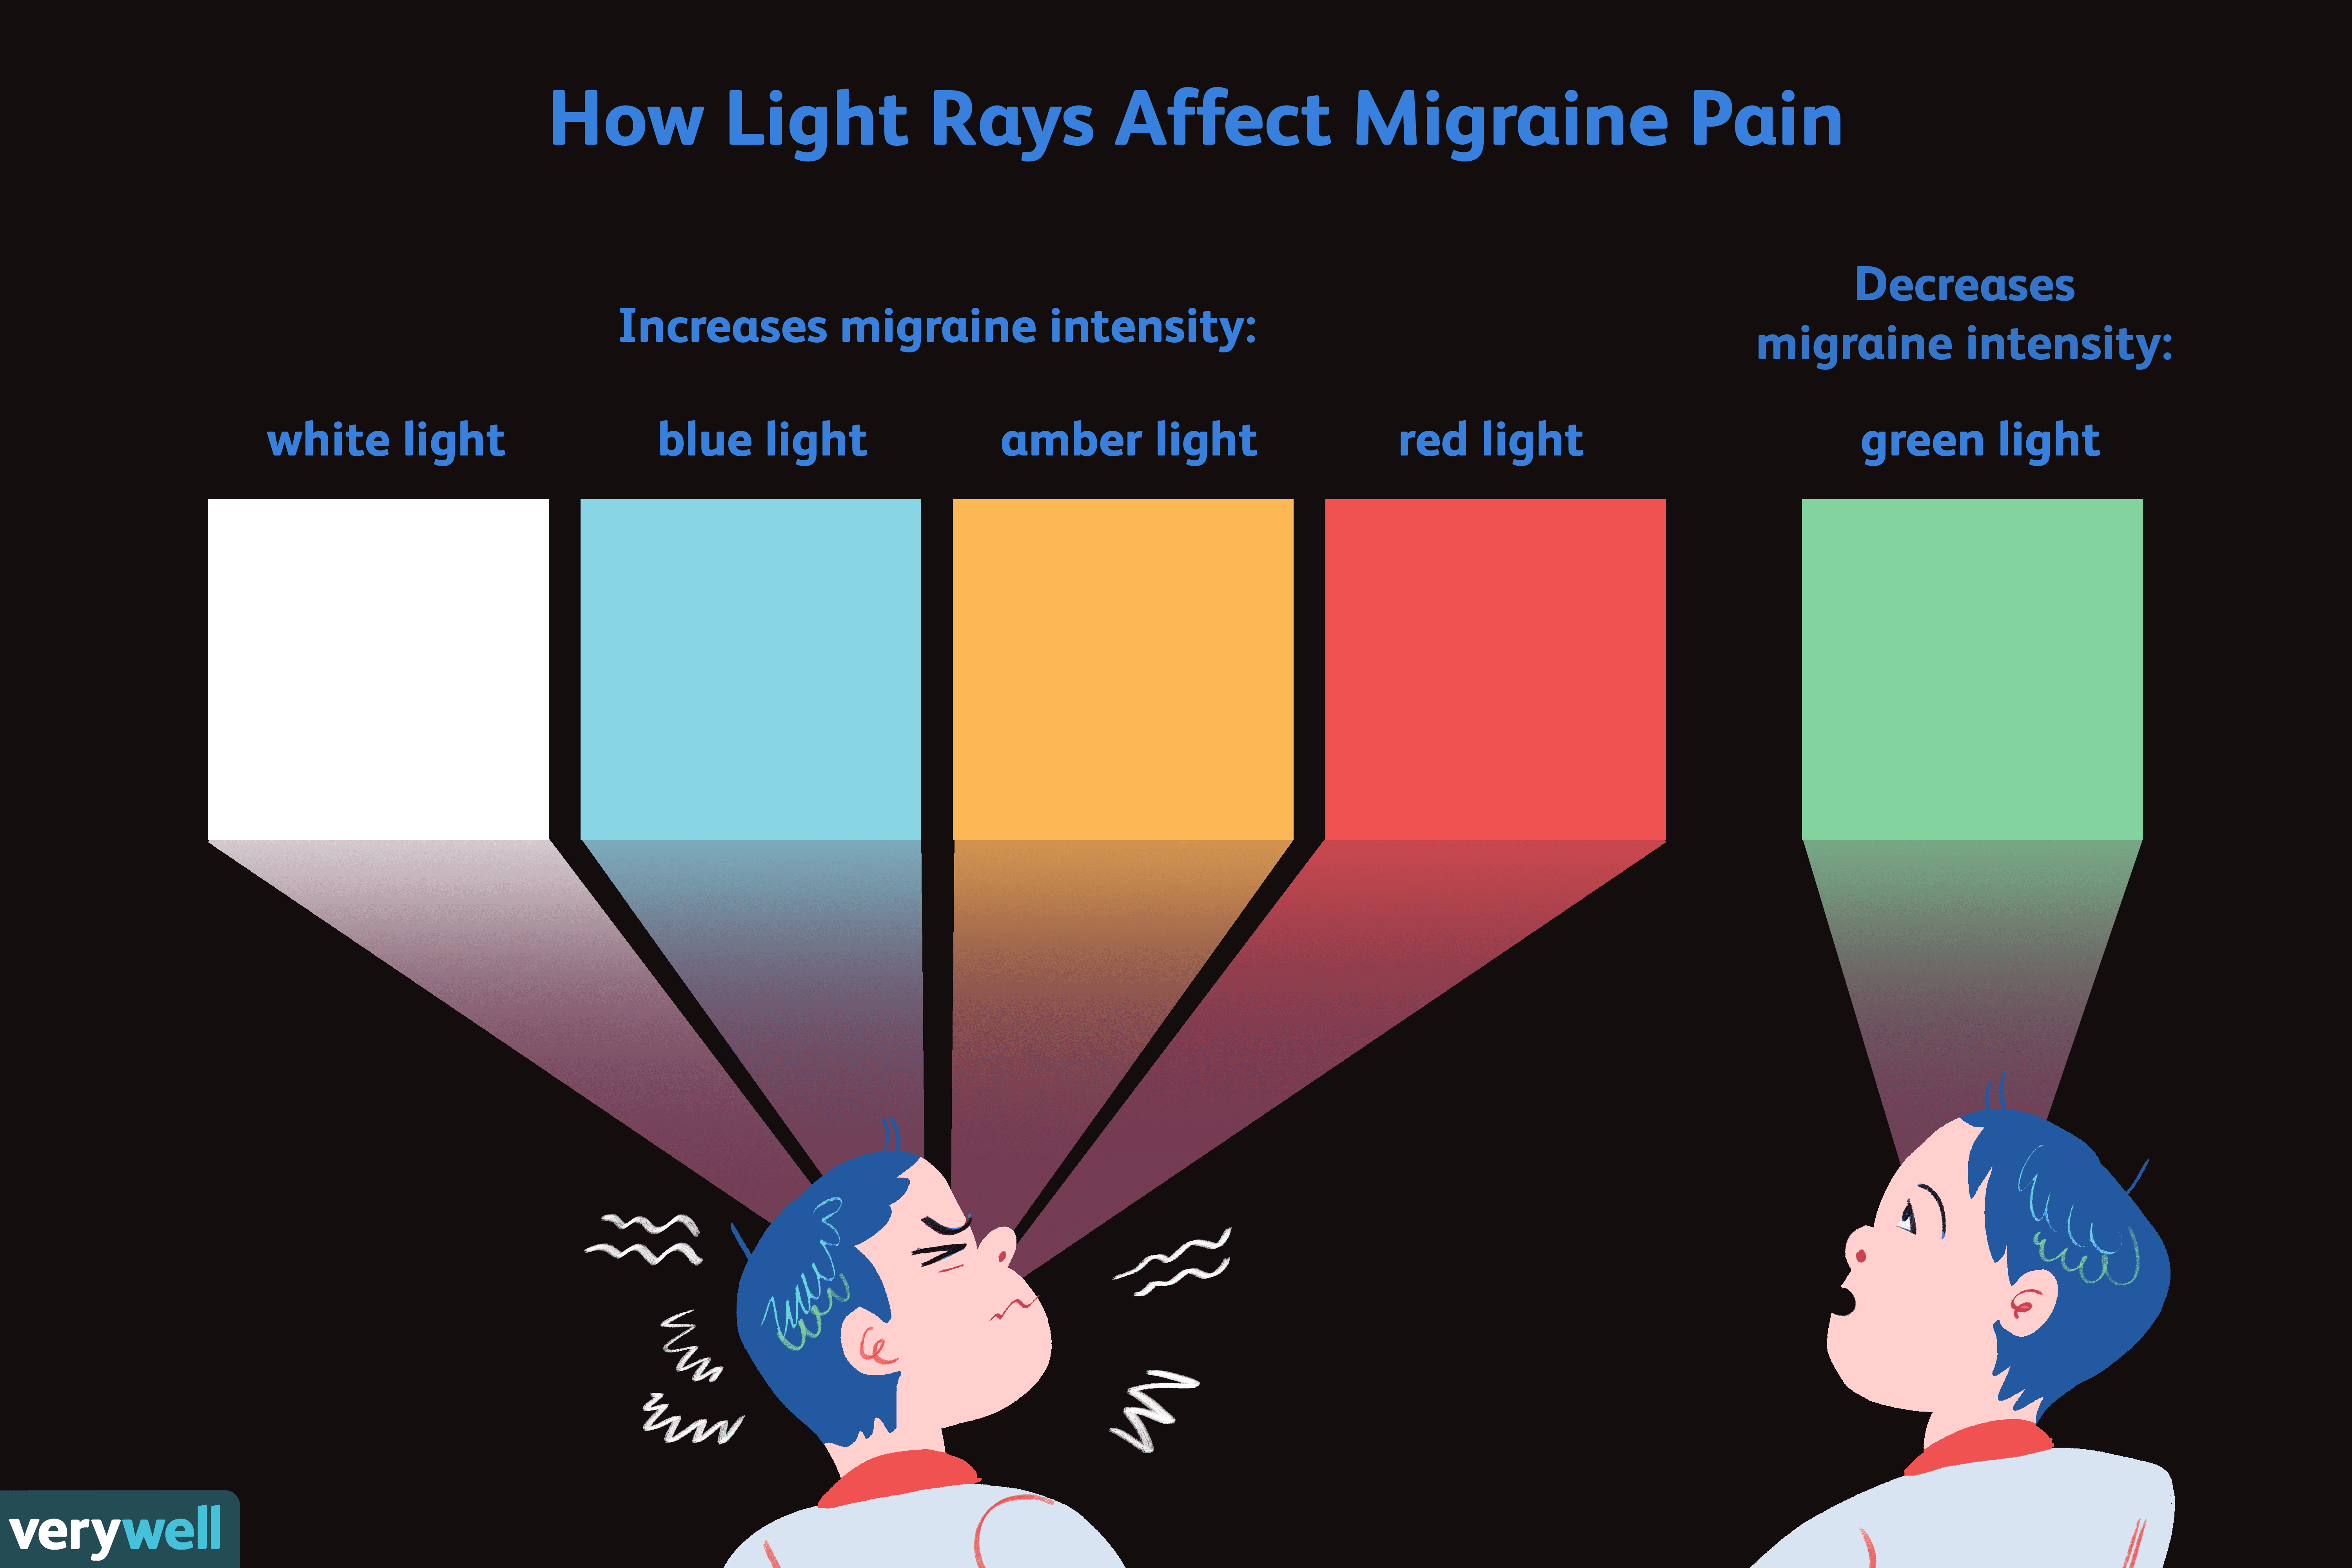 how light rays affect migraine pain